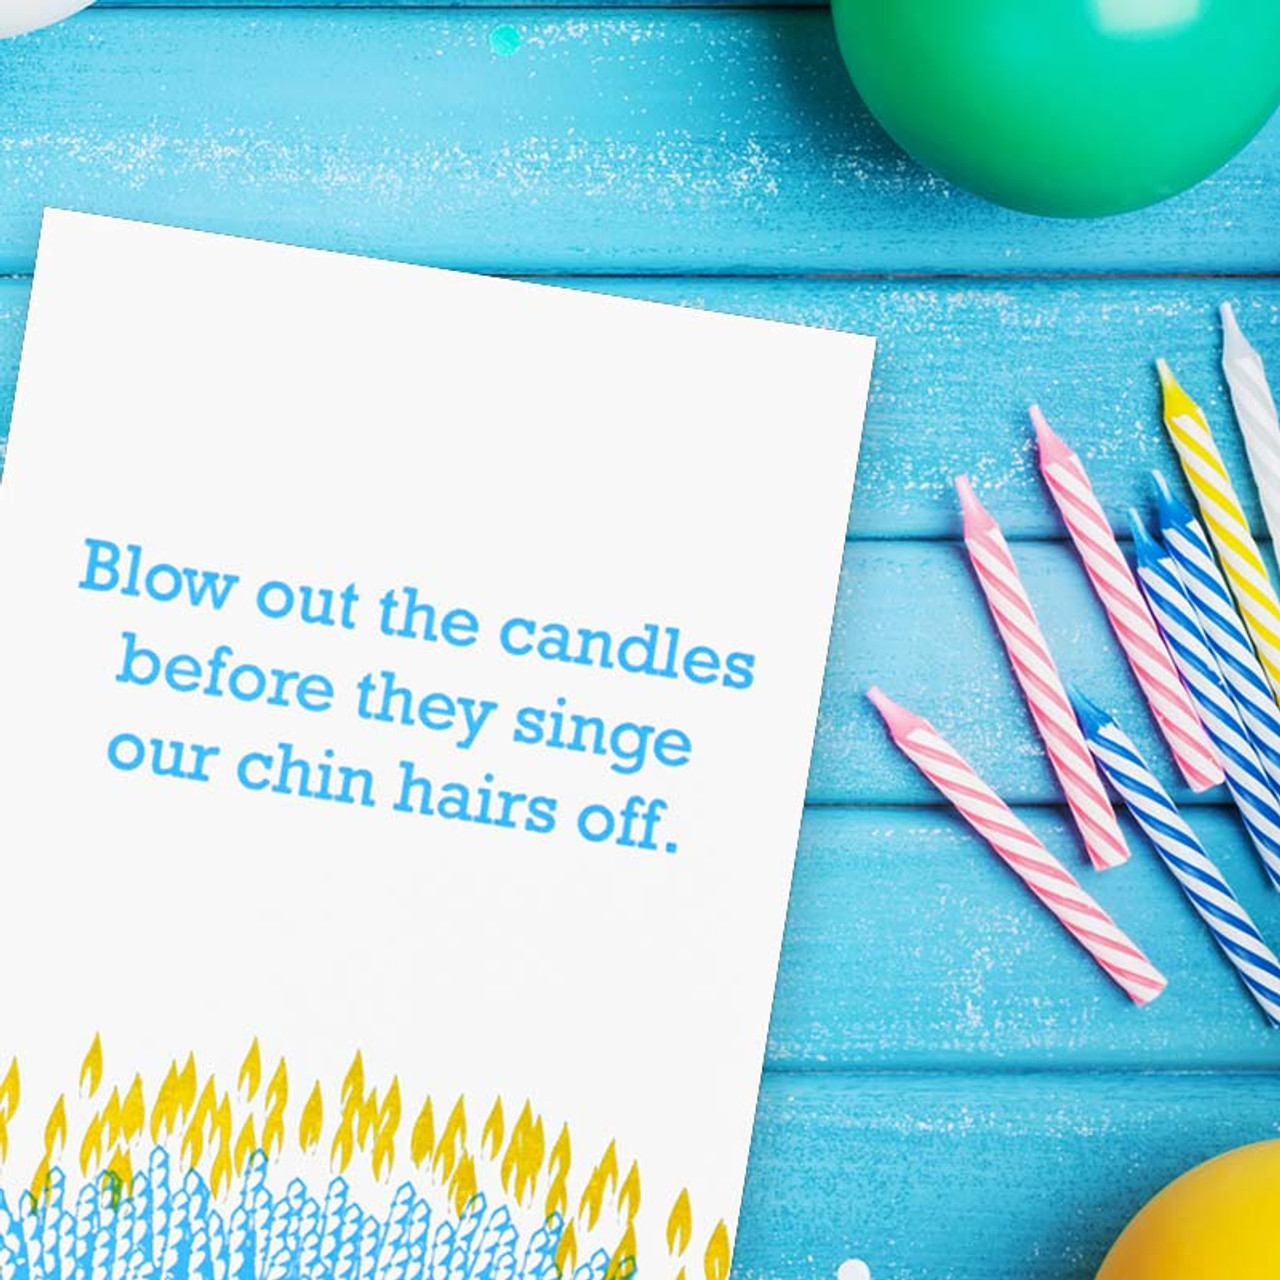 Growing older and finding chin hairs birthday card!